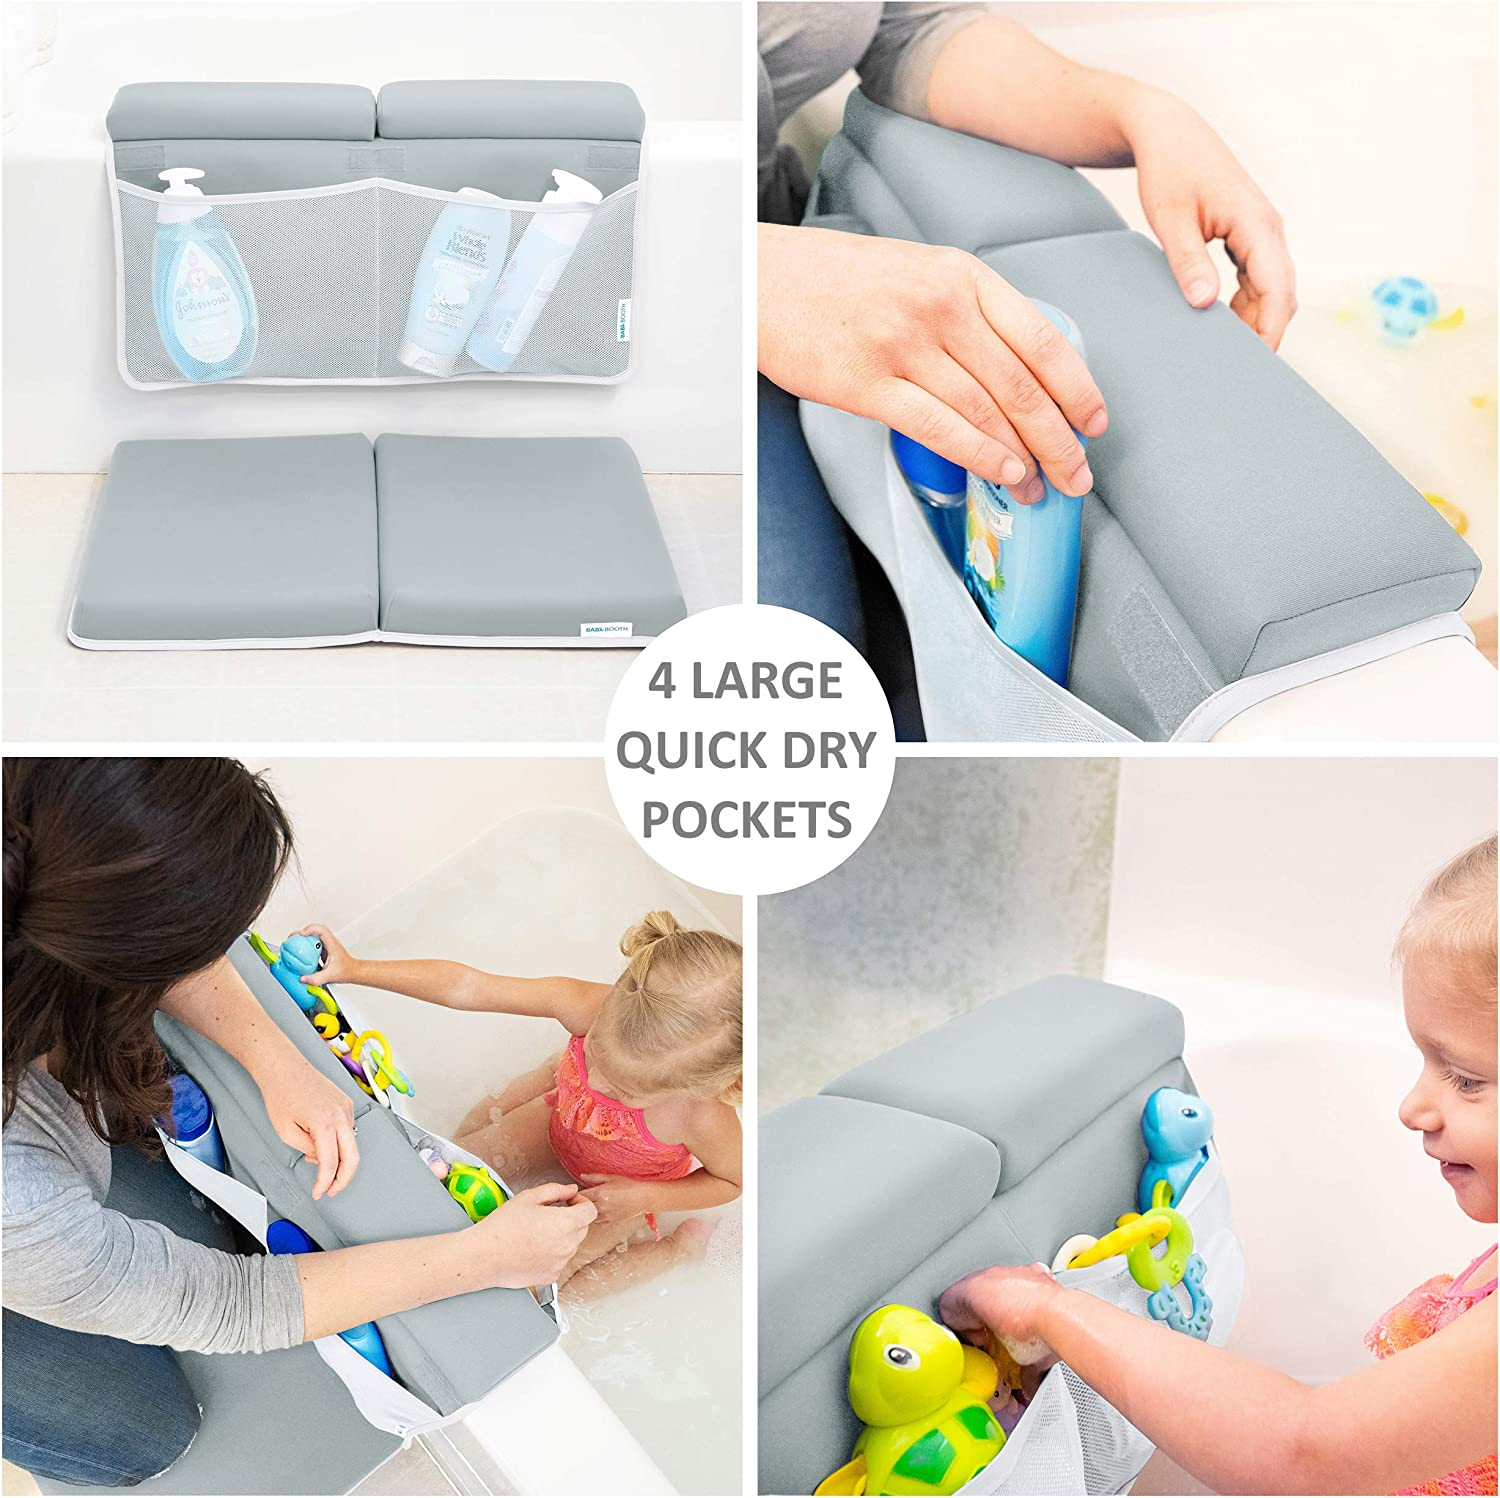 Bath Tub Elbow Pad with Infant Toy and Baby Accessories Organizer Grey Baby Bath Kneeler and Elbow Rest 1.75 inch Extra Thick Baby Bath Kneeling Pad and Elbow Pad for Bathtub